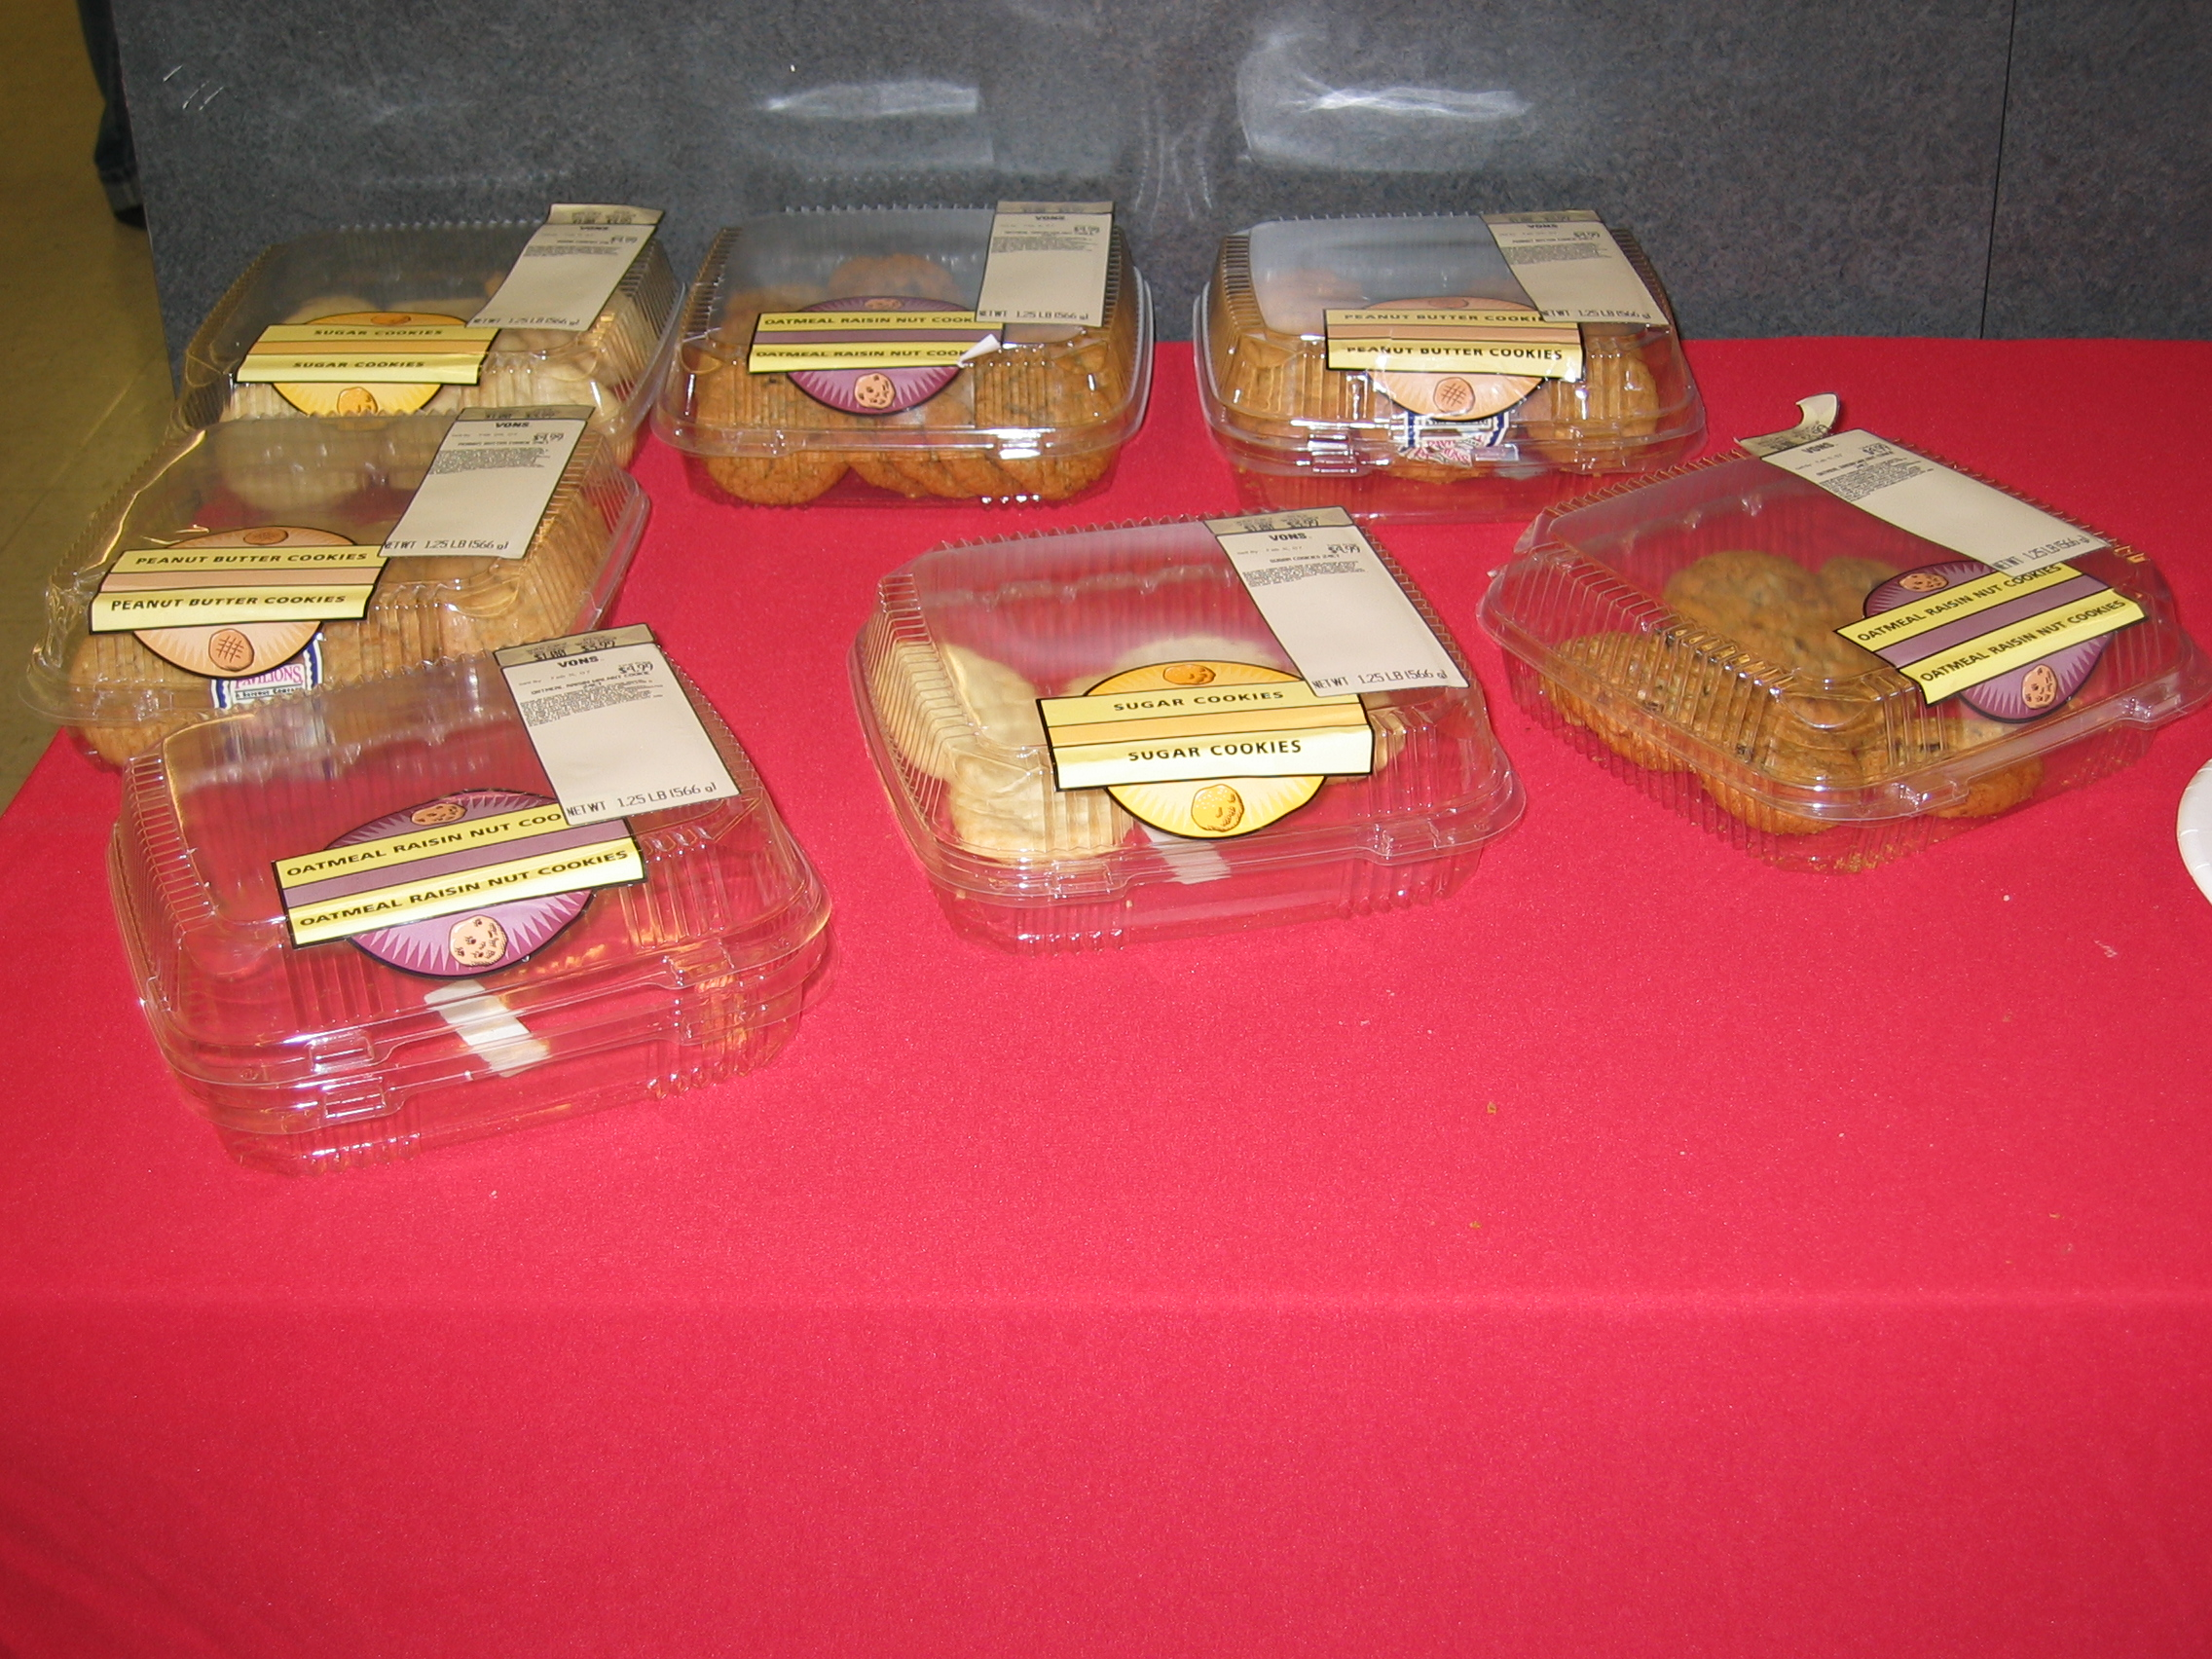 The free supermarket cookies remained largely untouched.